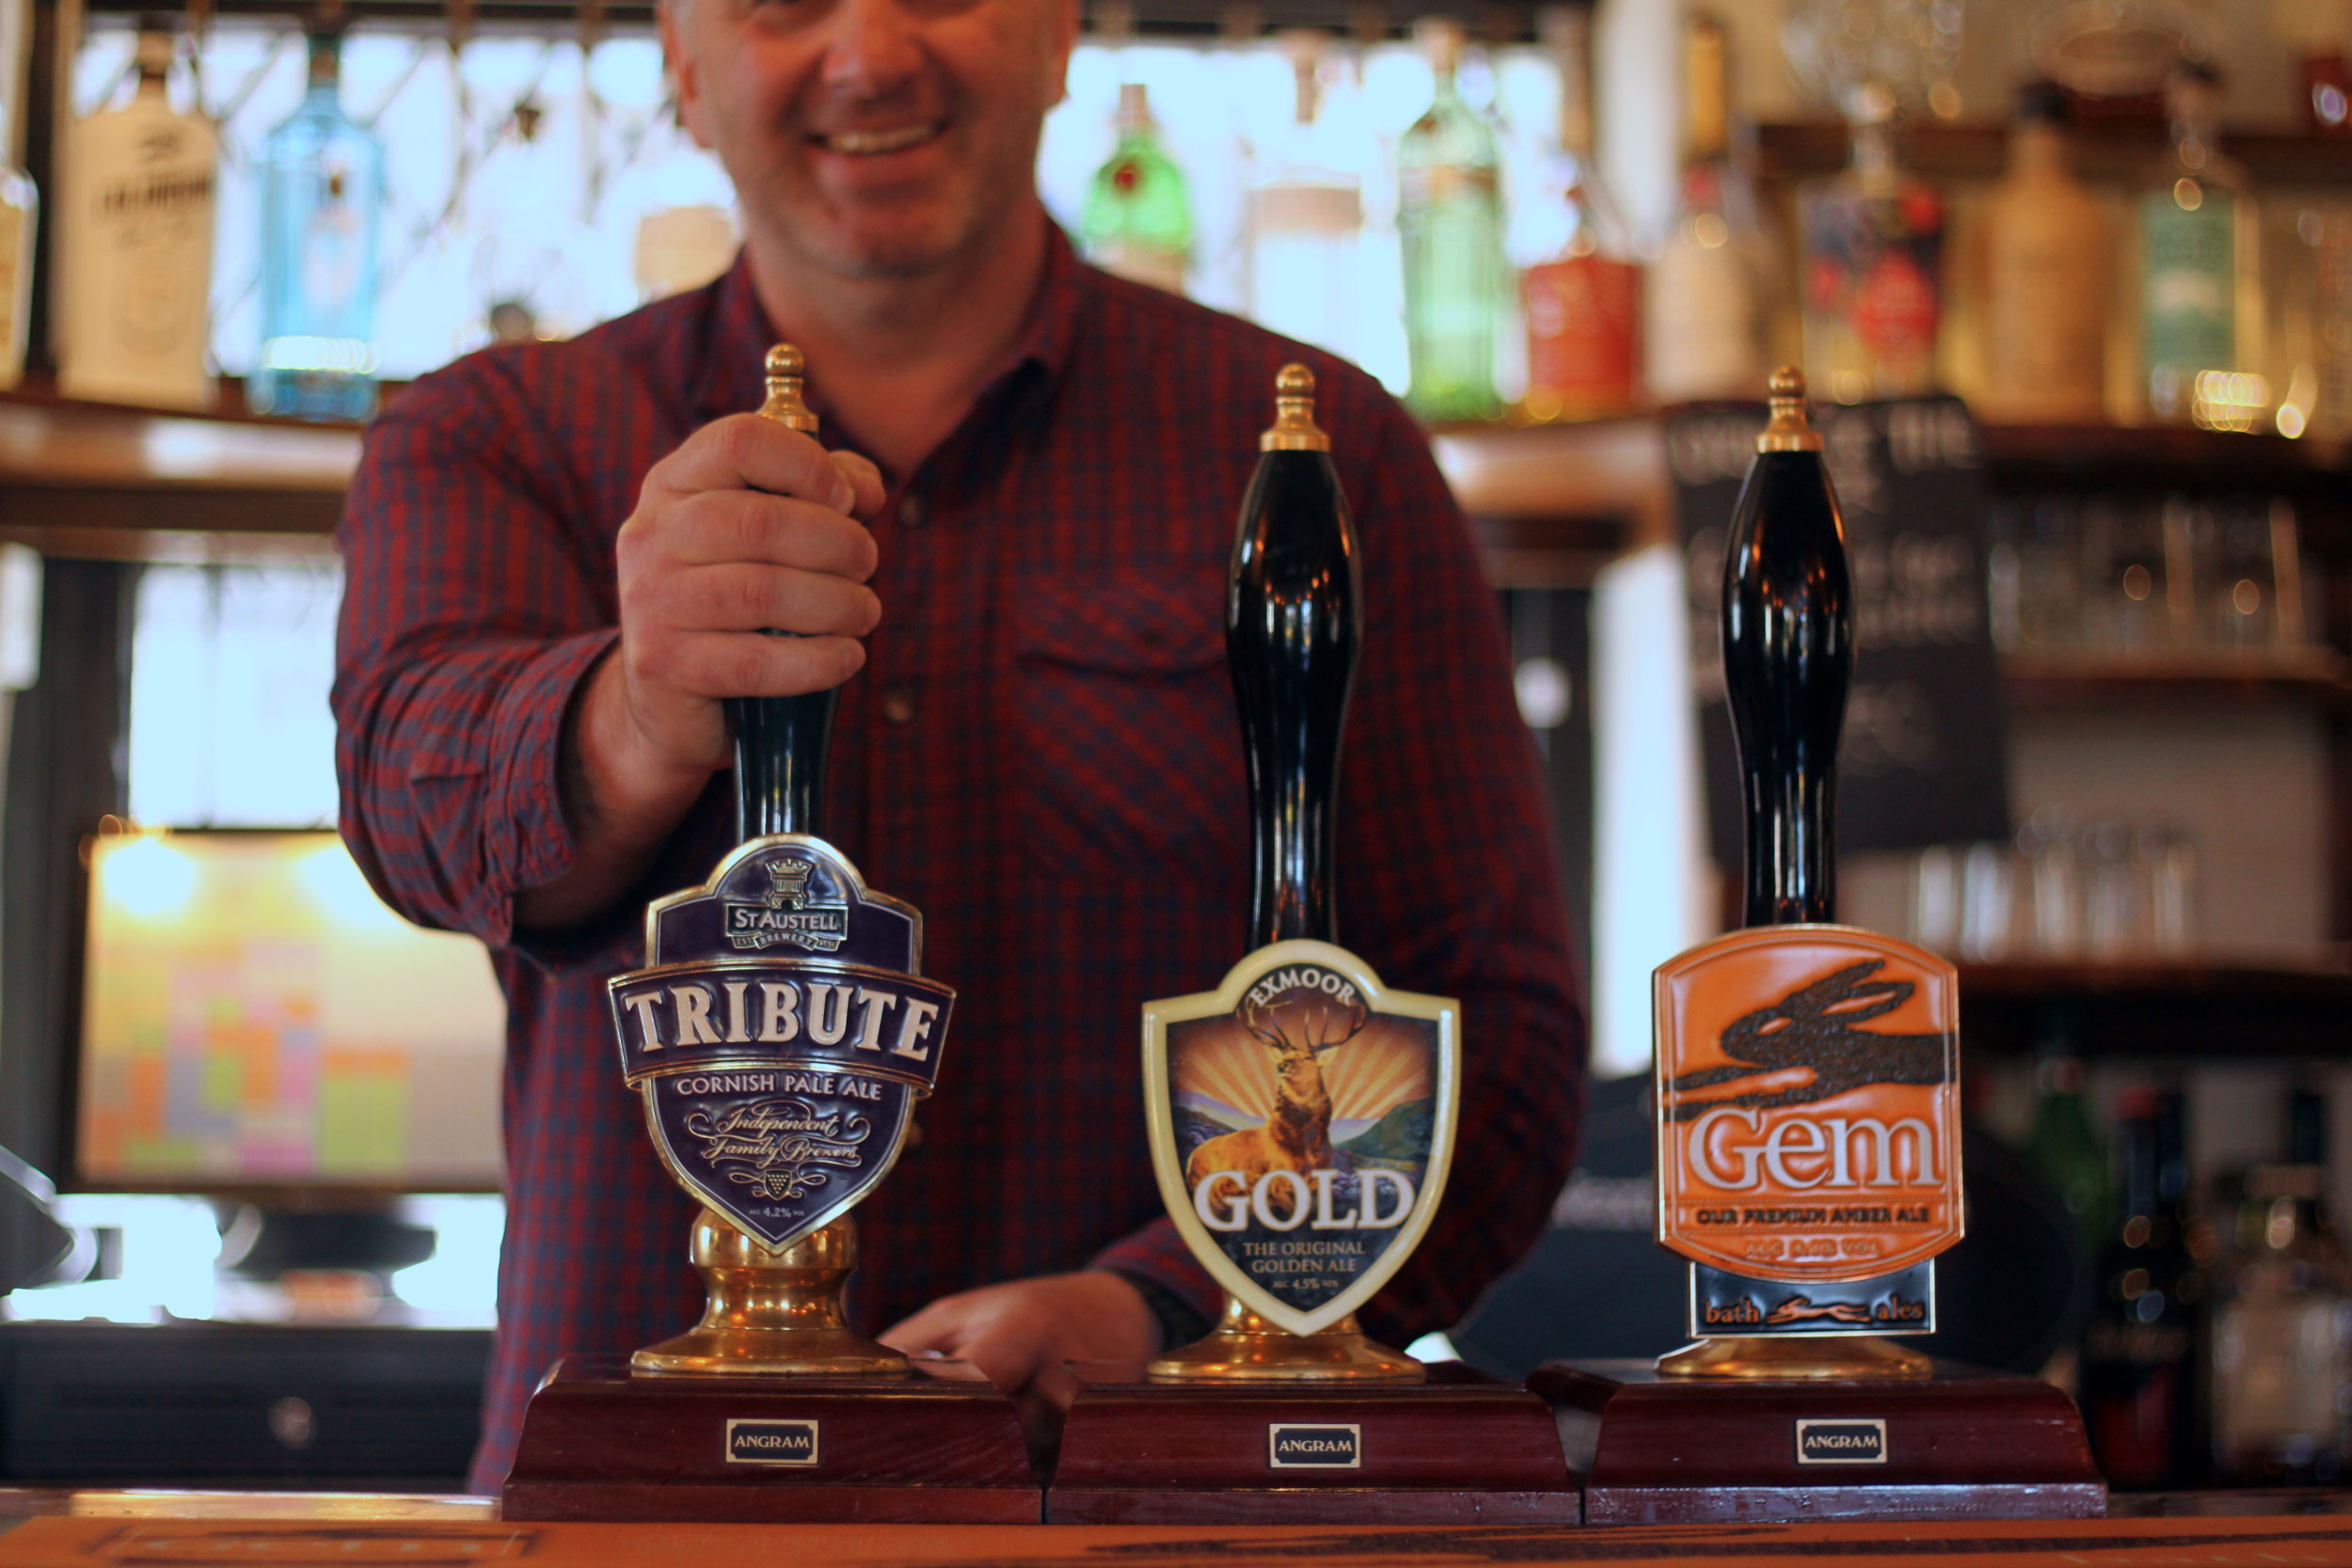 The-Thatched-Inn-Real-Ales.jpg